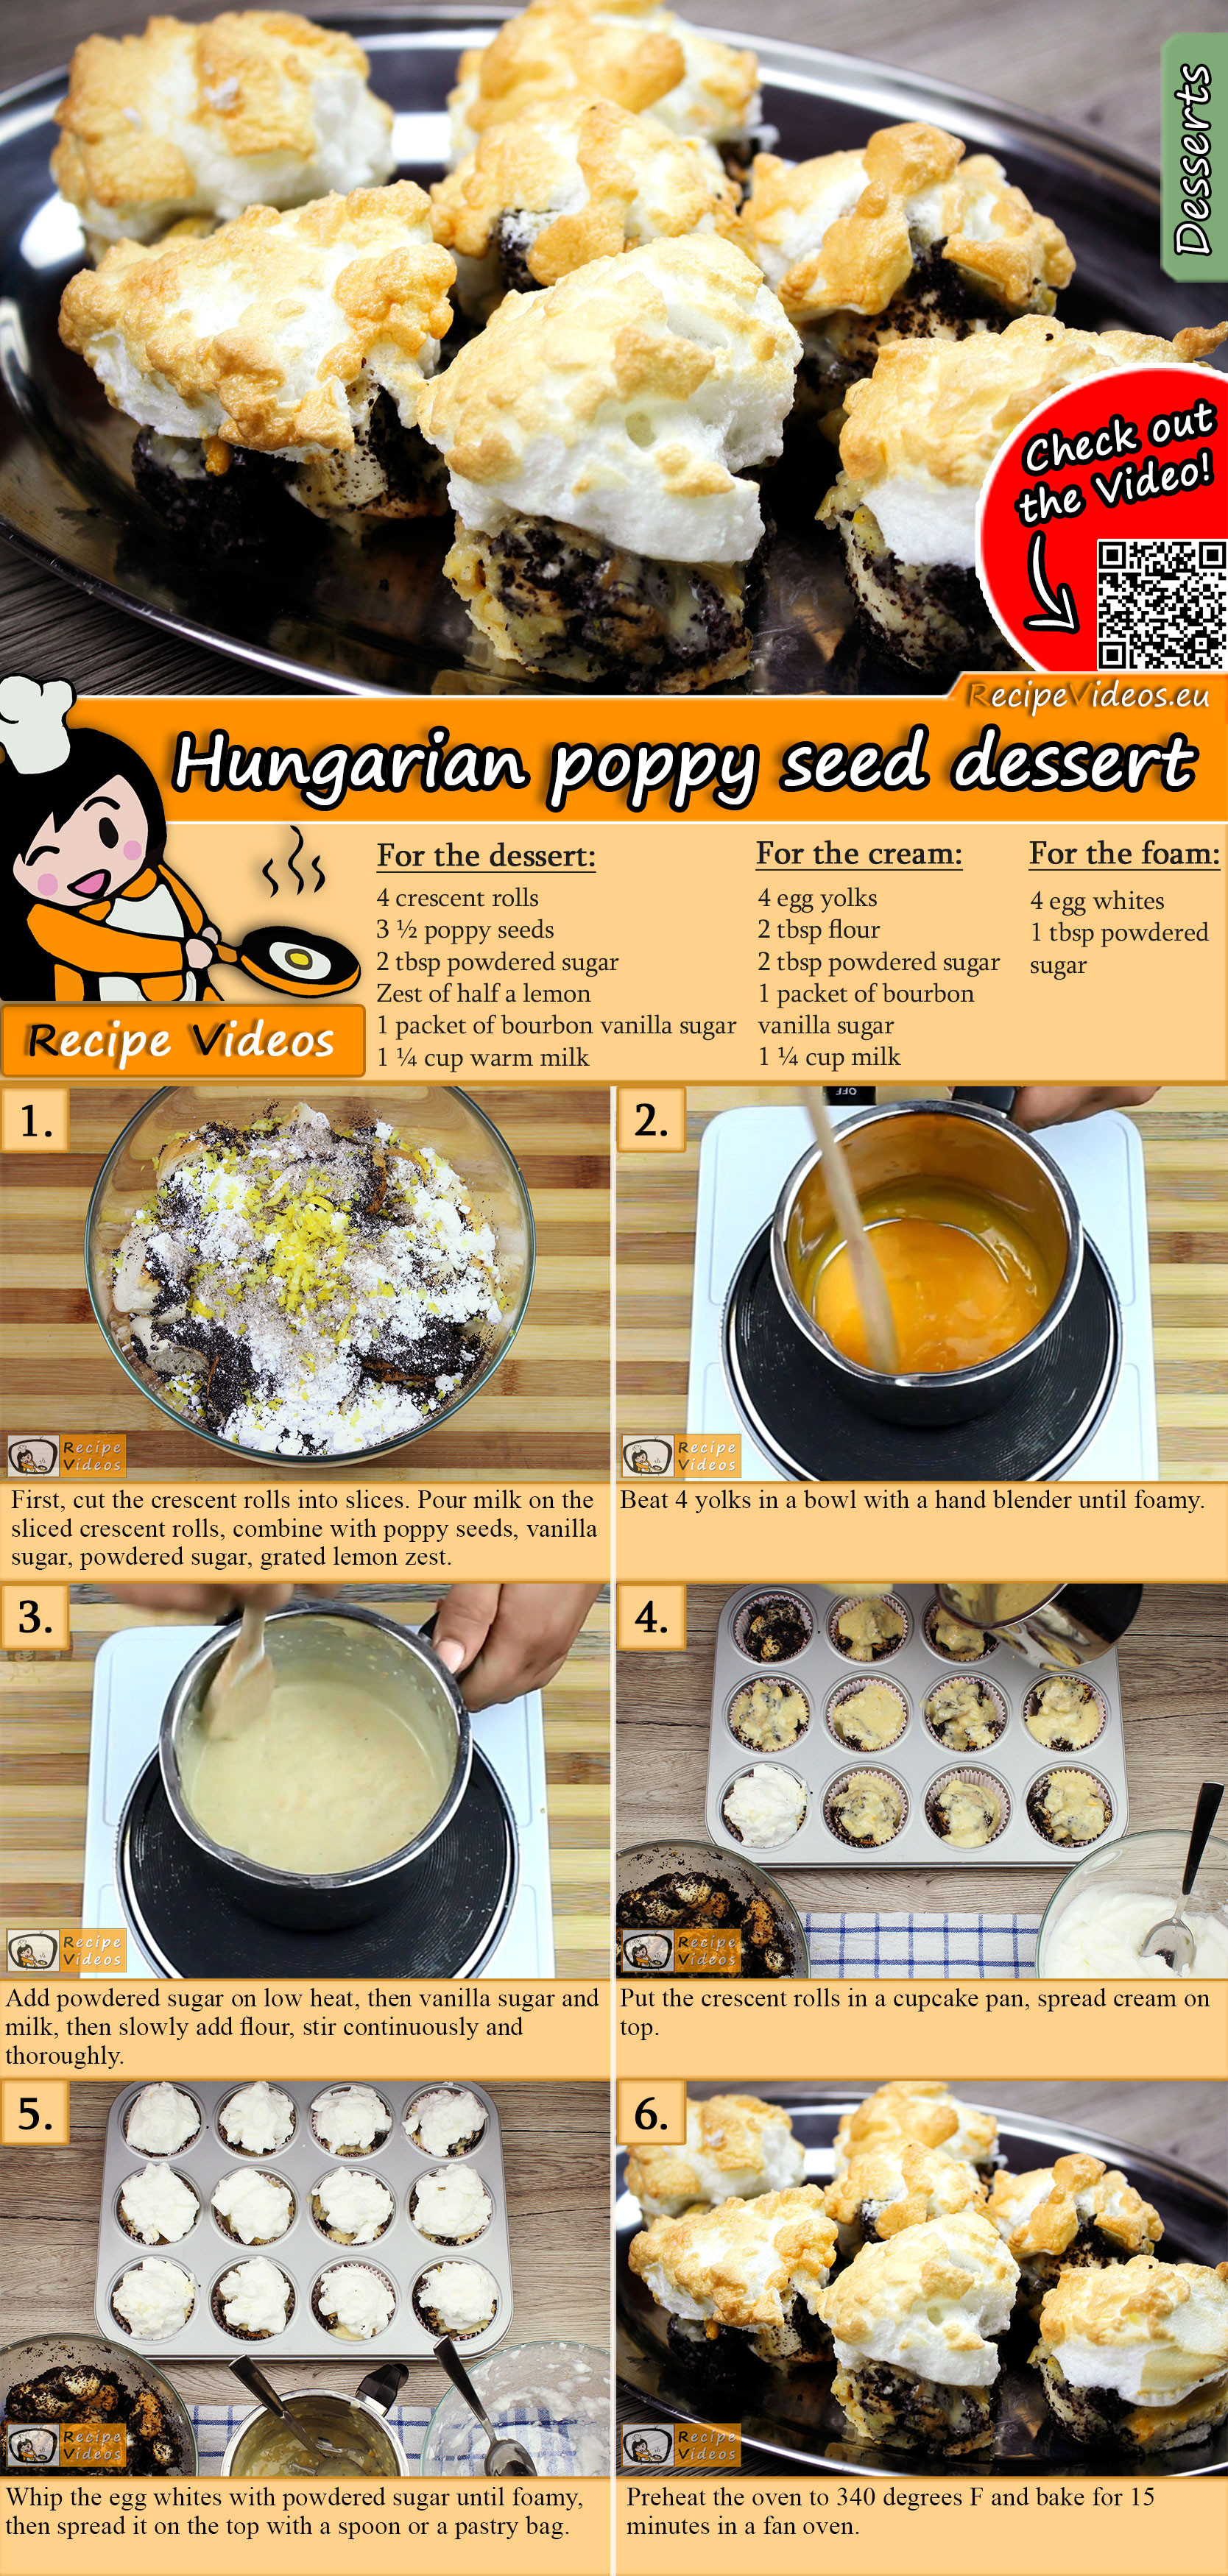 Hungarian poppy seed dessert recipe with video